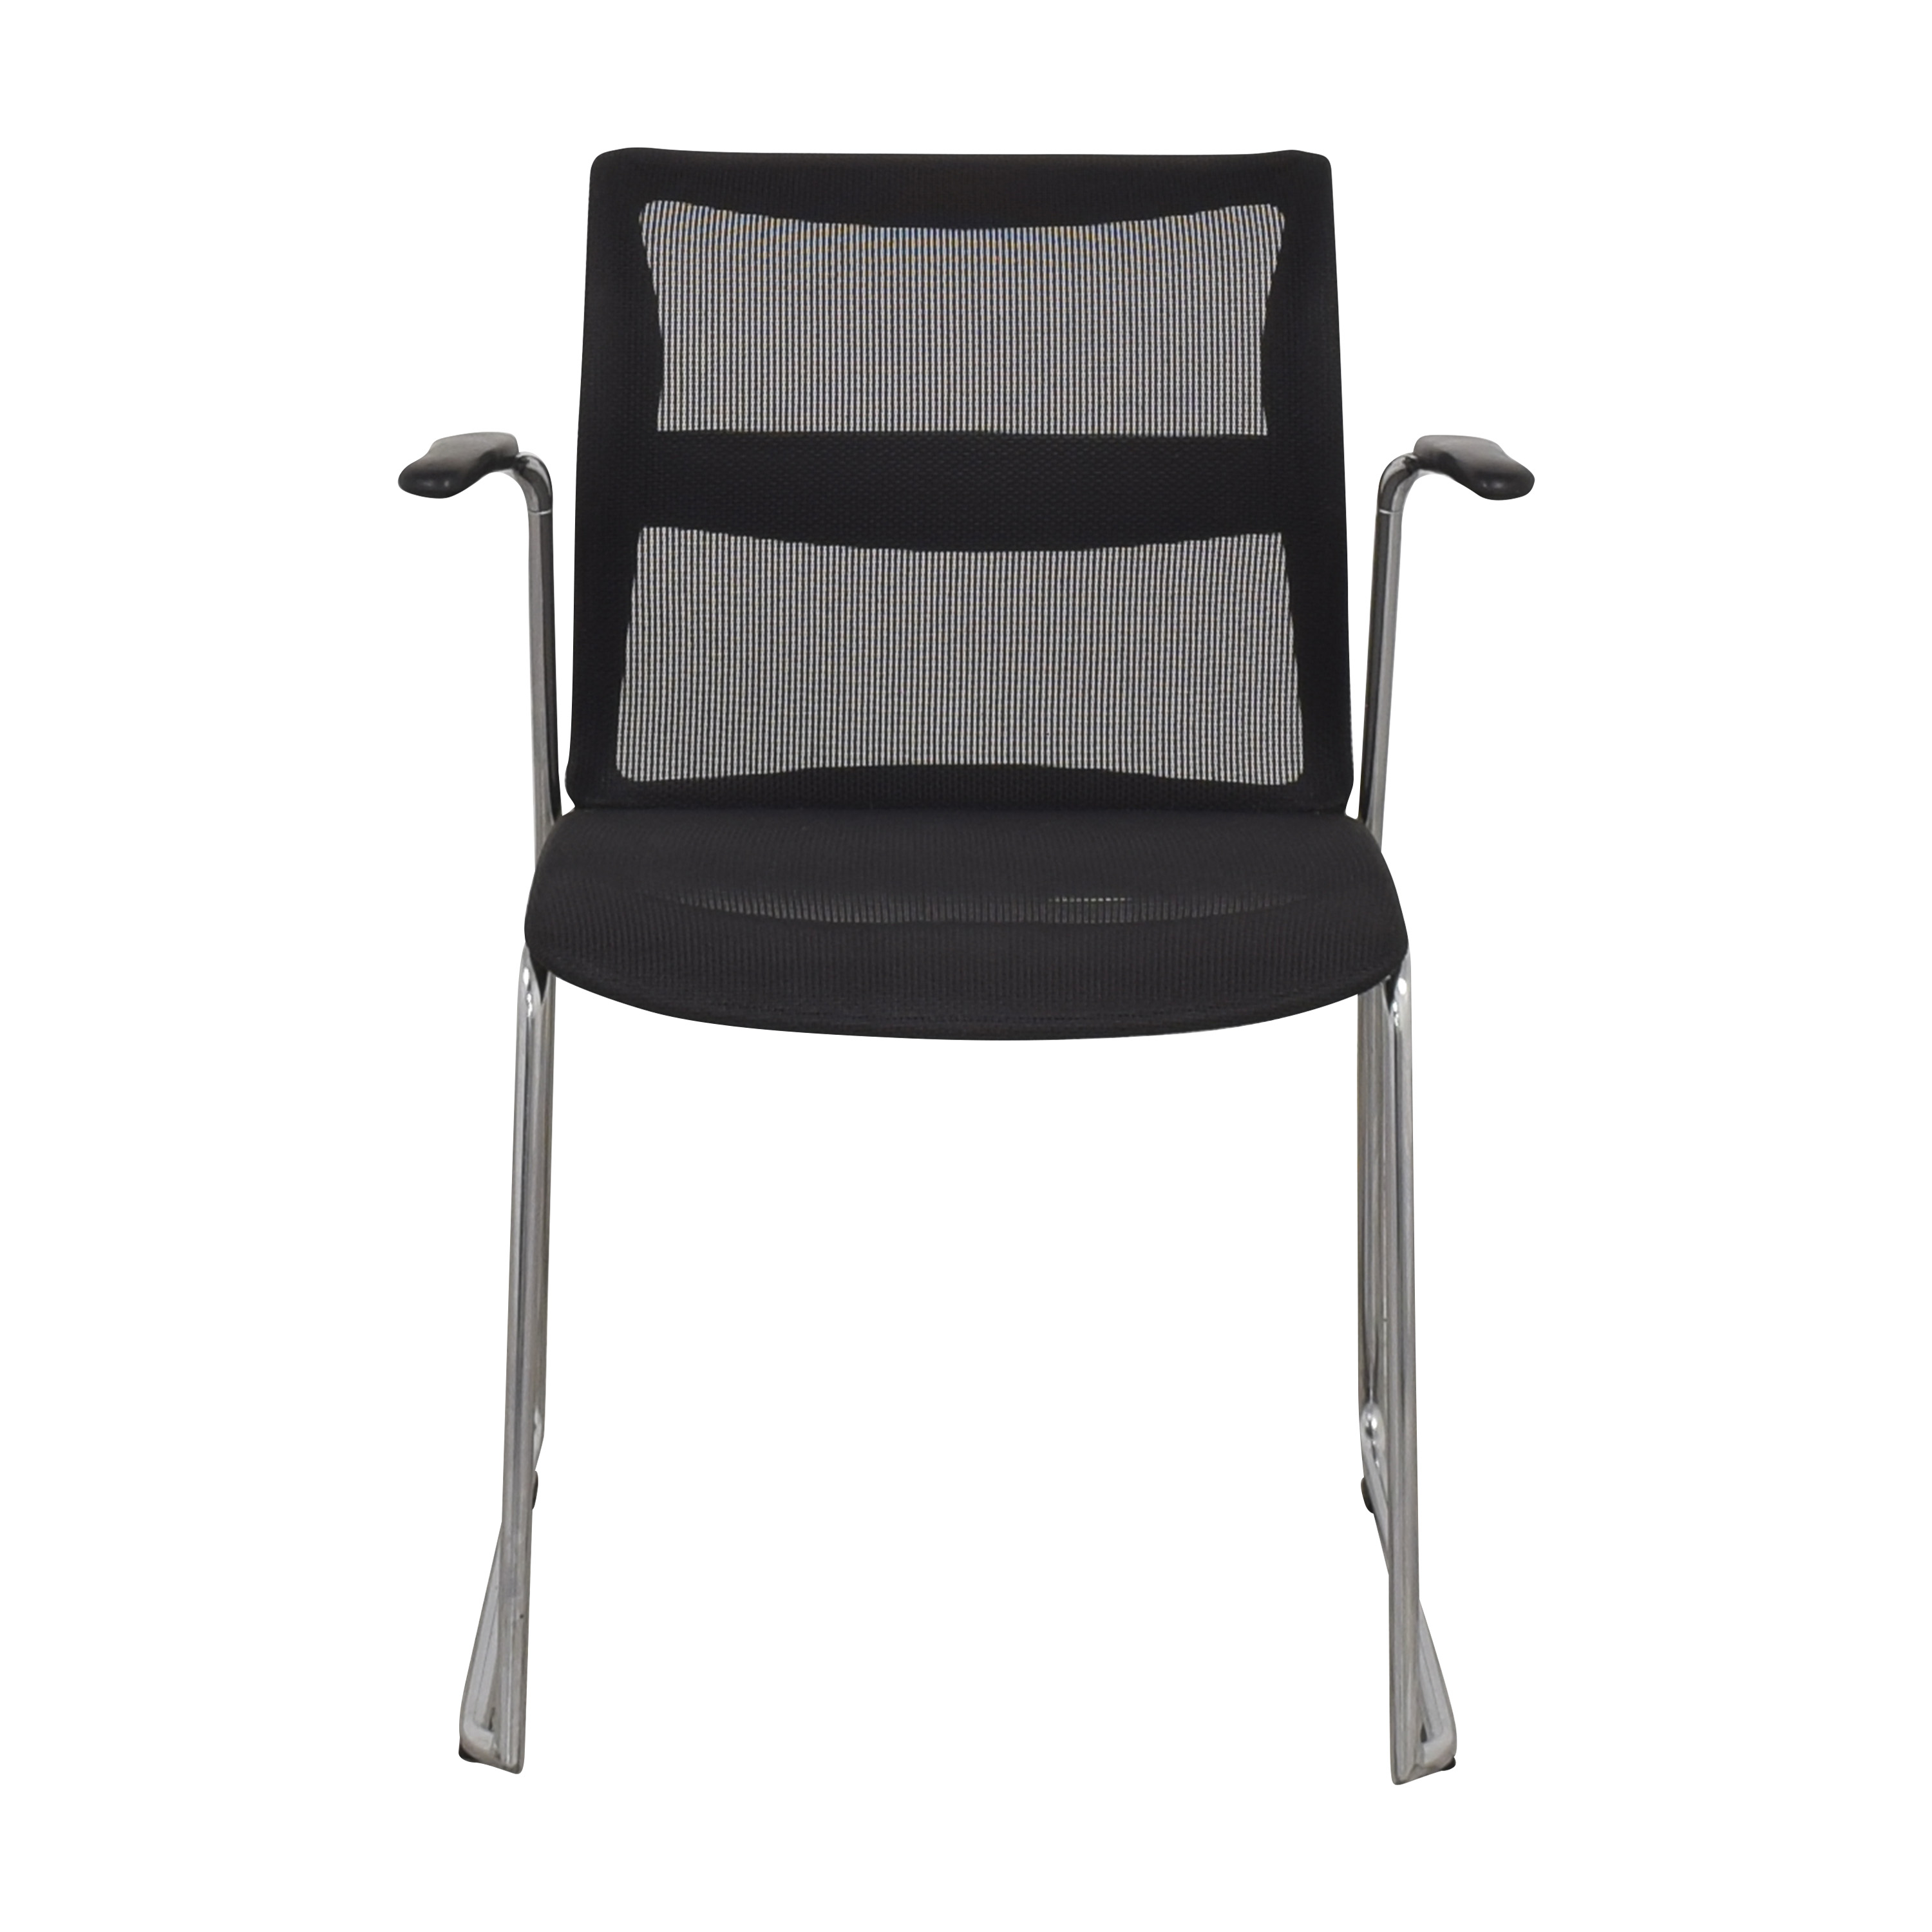 Stylex Zephyr Stacking Arm Chair / Home Office Chairs